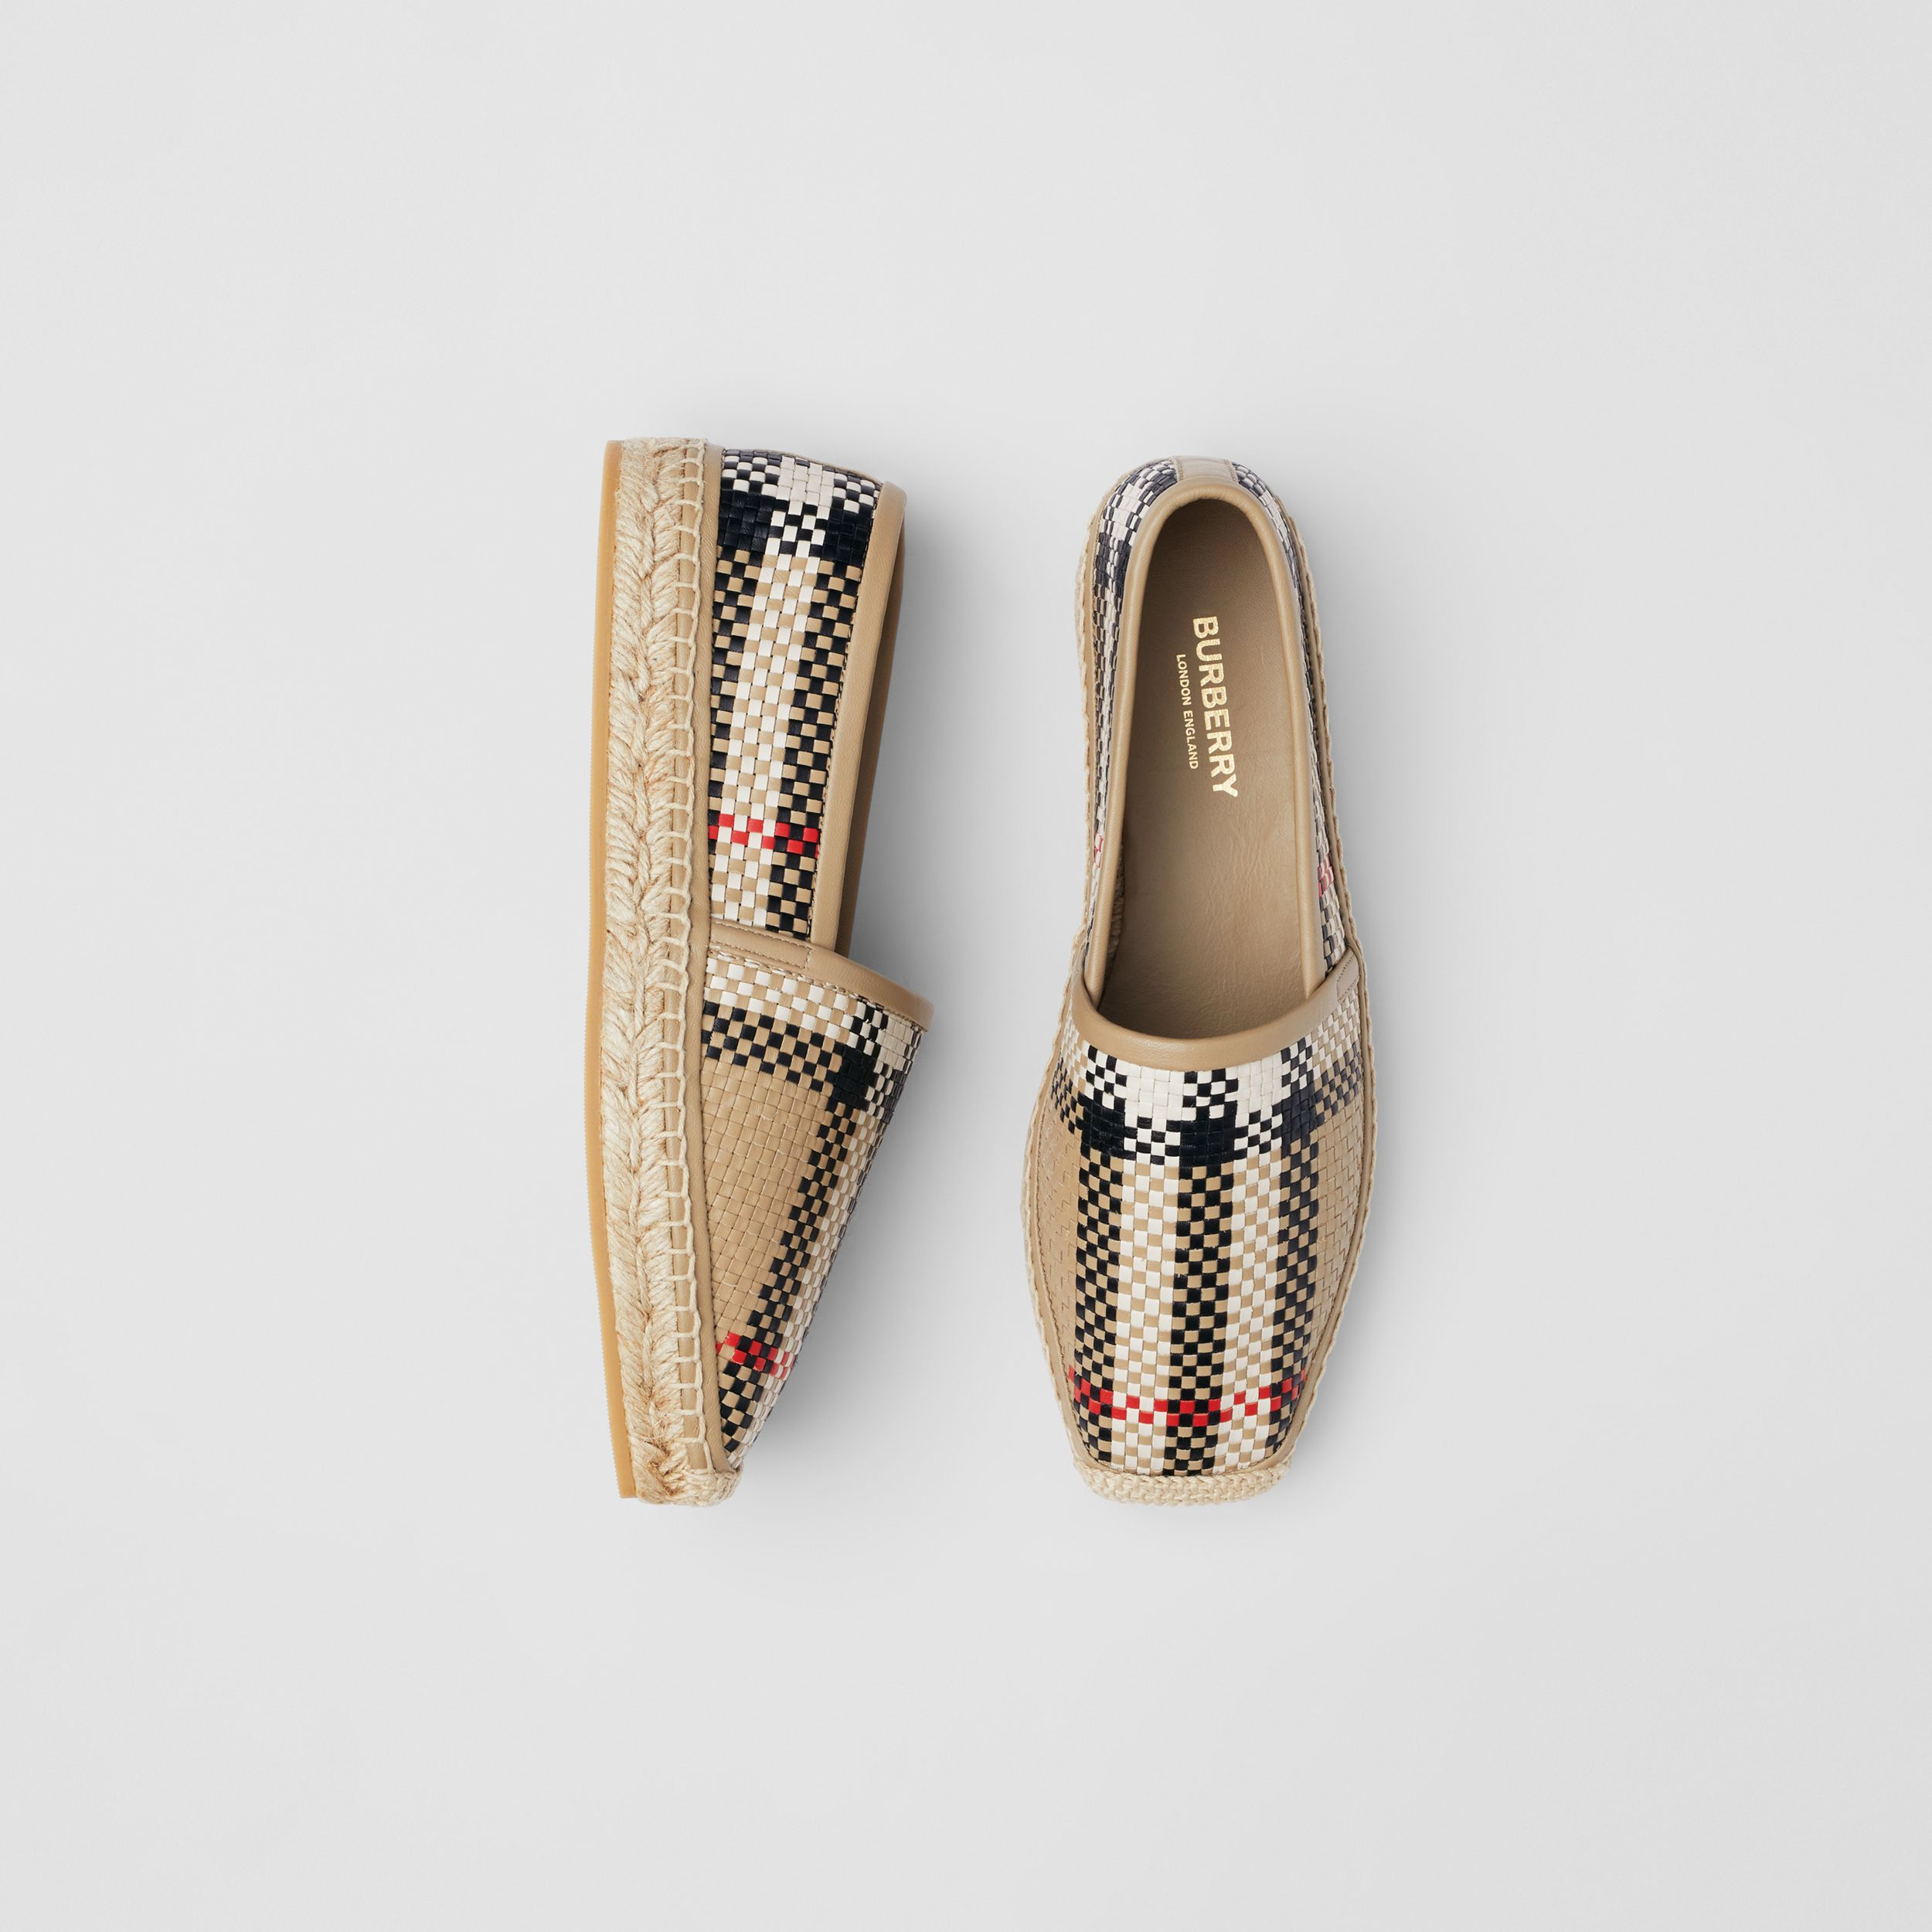 Latticed Leather Espadrilles in Archive Beige - Women | Burberry Hong Kong S.A.R. - 1